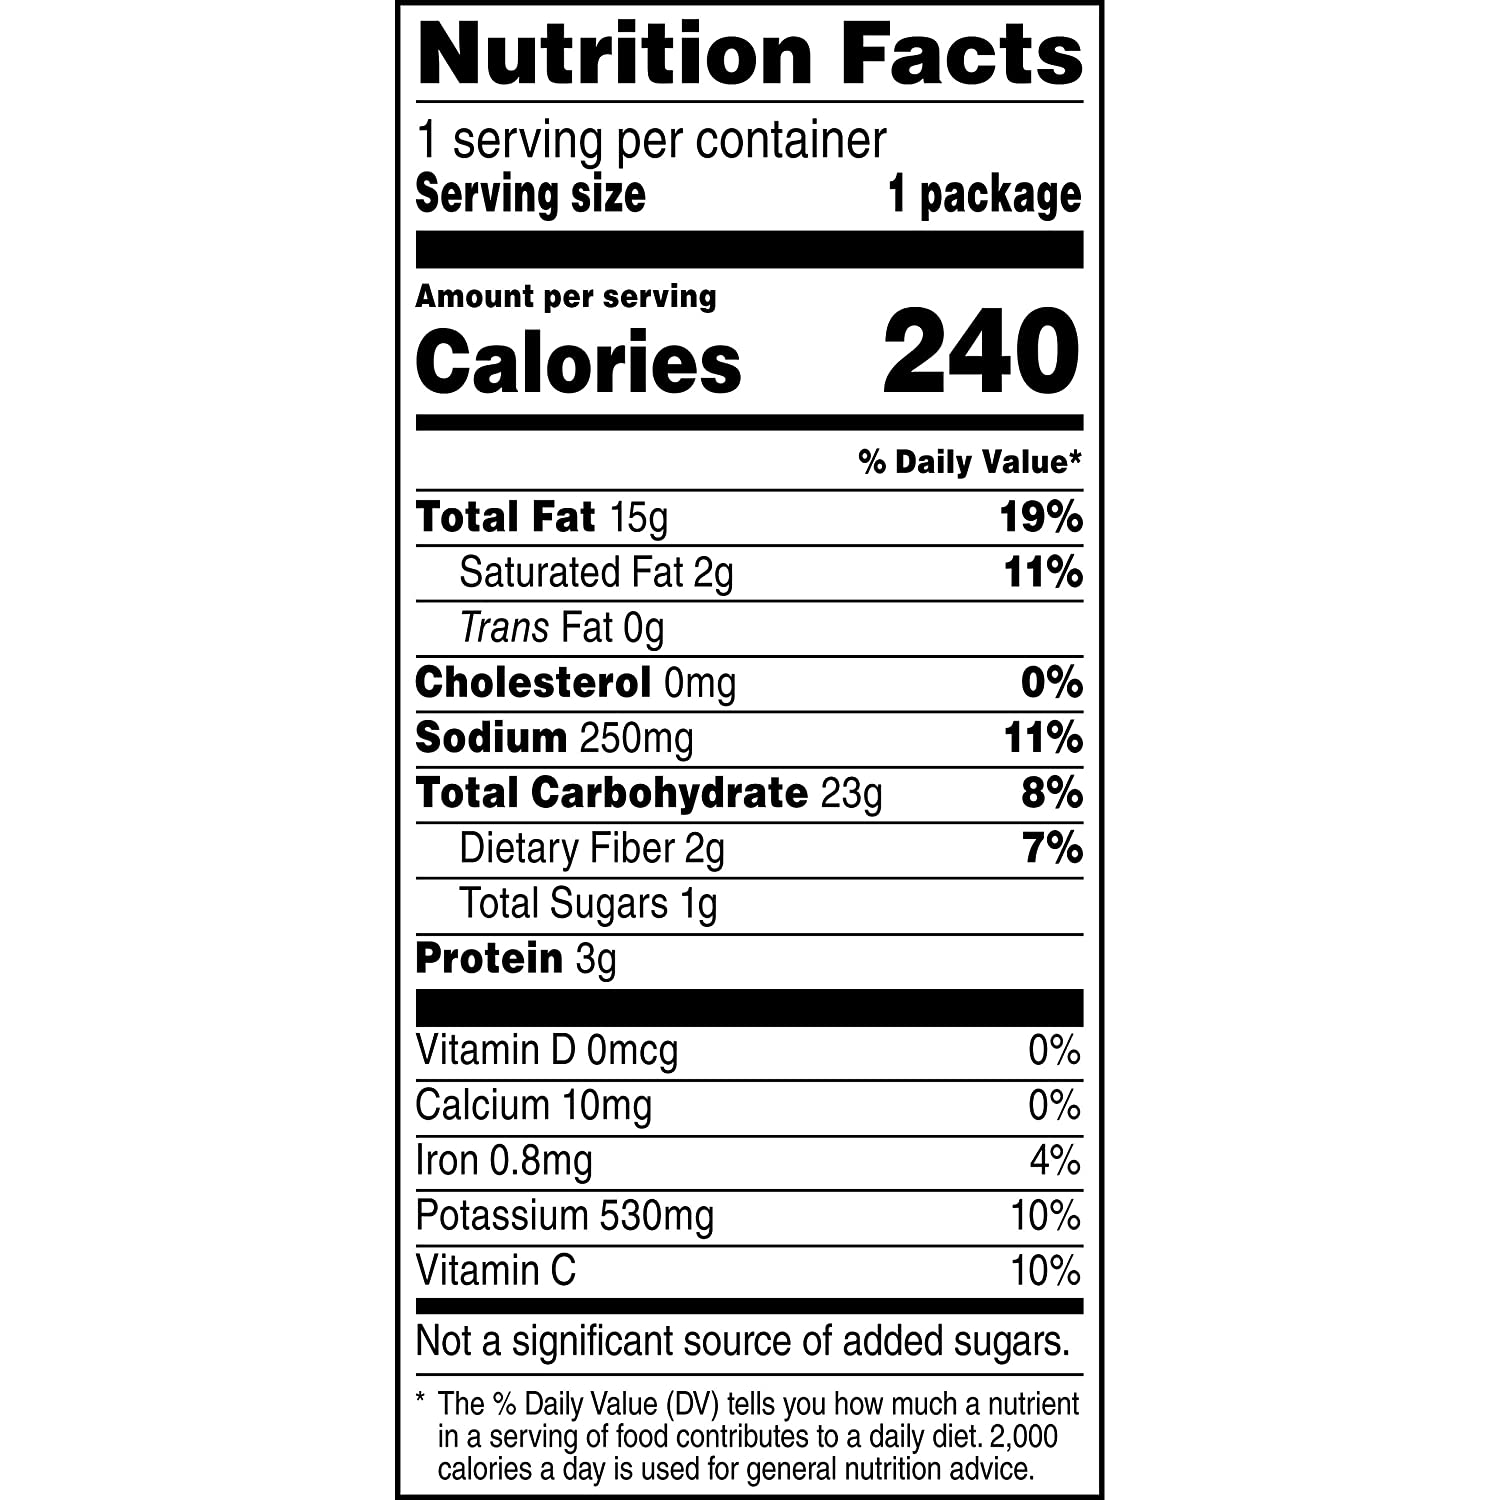 Party Chip Bag Nutrition Facts Nutritionwalls